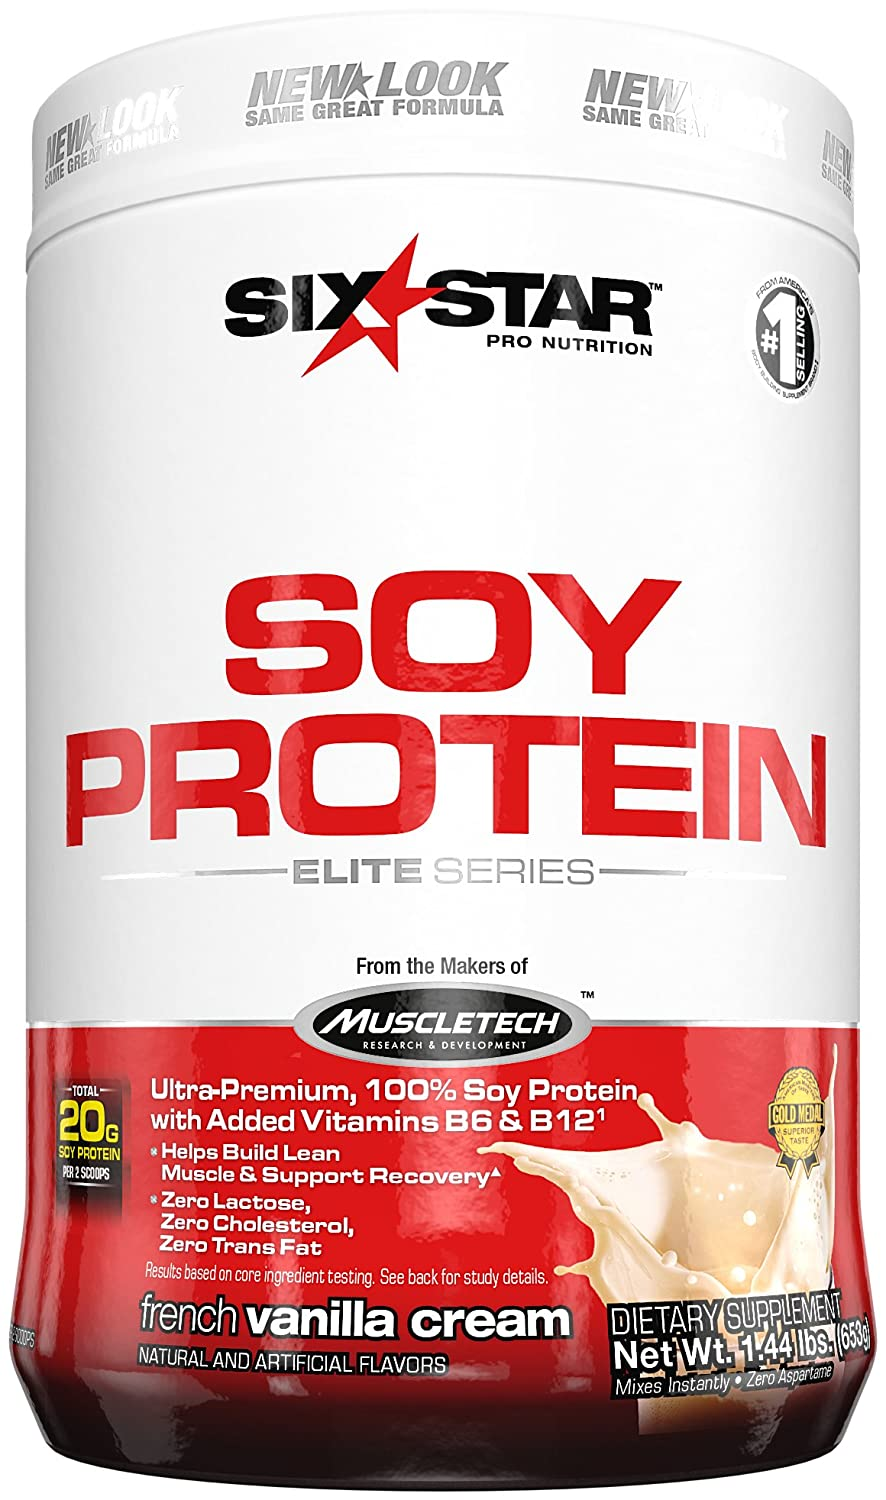 Six Star Pro Nutrition Soy Protein - Elite Series French Vanilla Cream 1.44 lbs  B00DTWKOFW